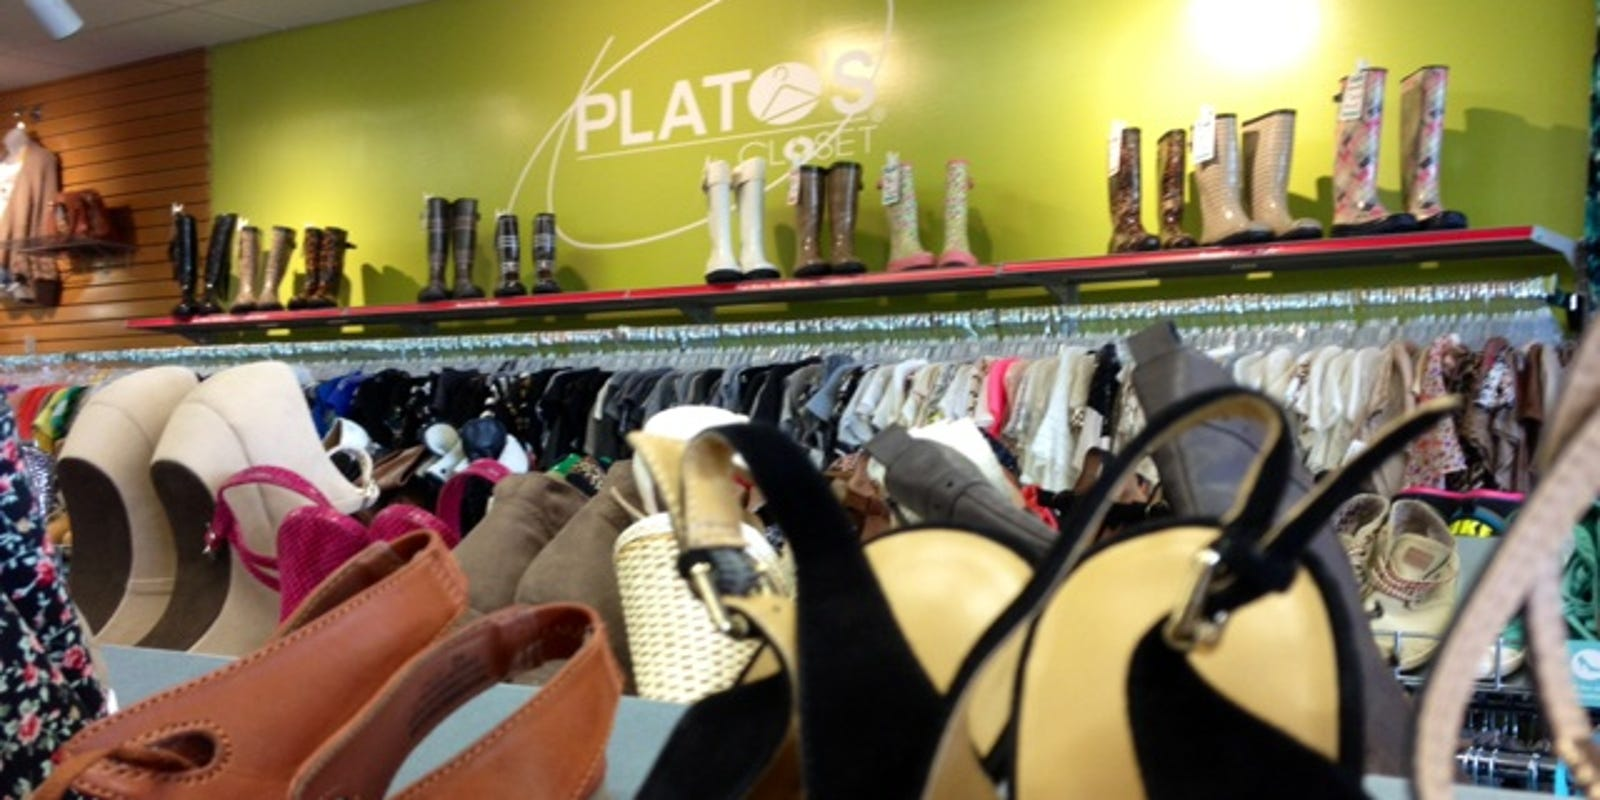 7e5fbfe19b7 Plato s Closet recycled clothing store opens in Ledgewood